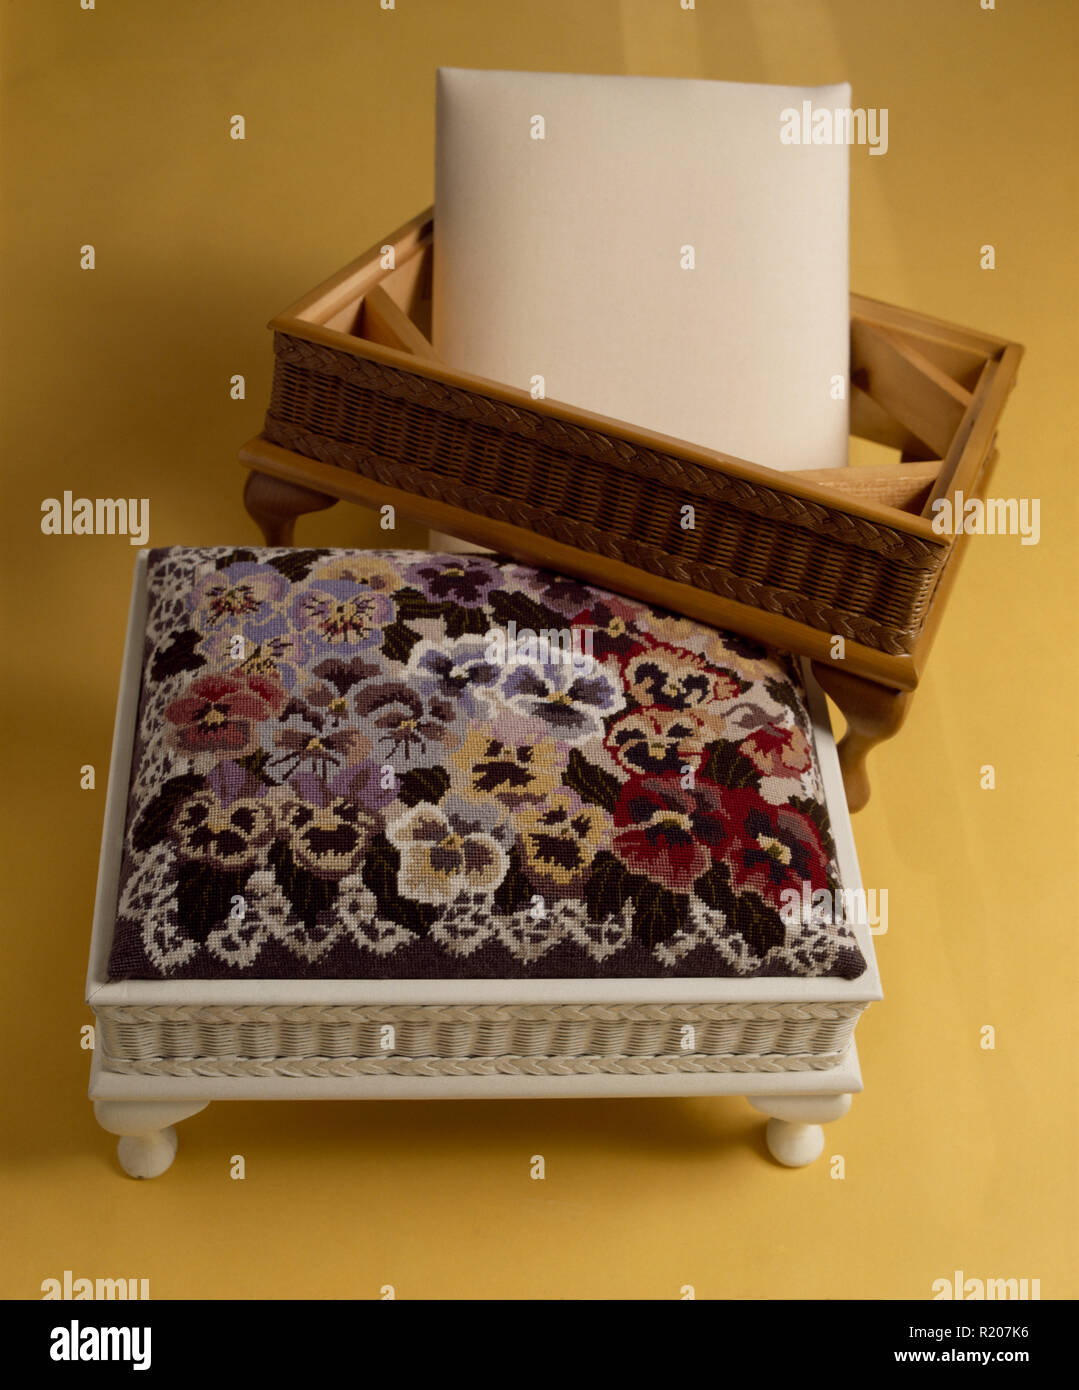 Close-up of a pansy themed cross stitch footstool - Stock Image